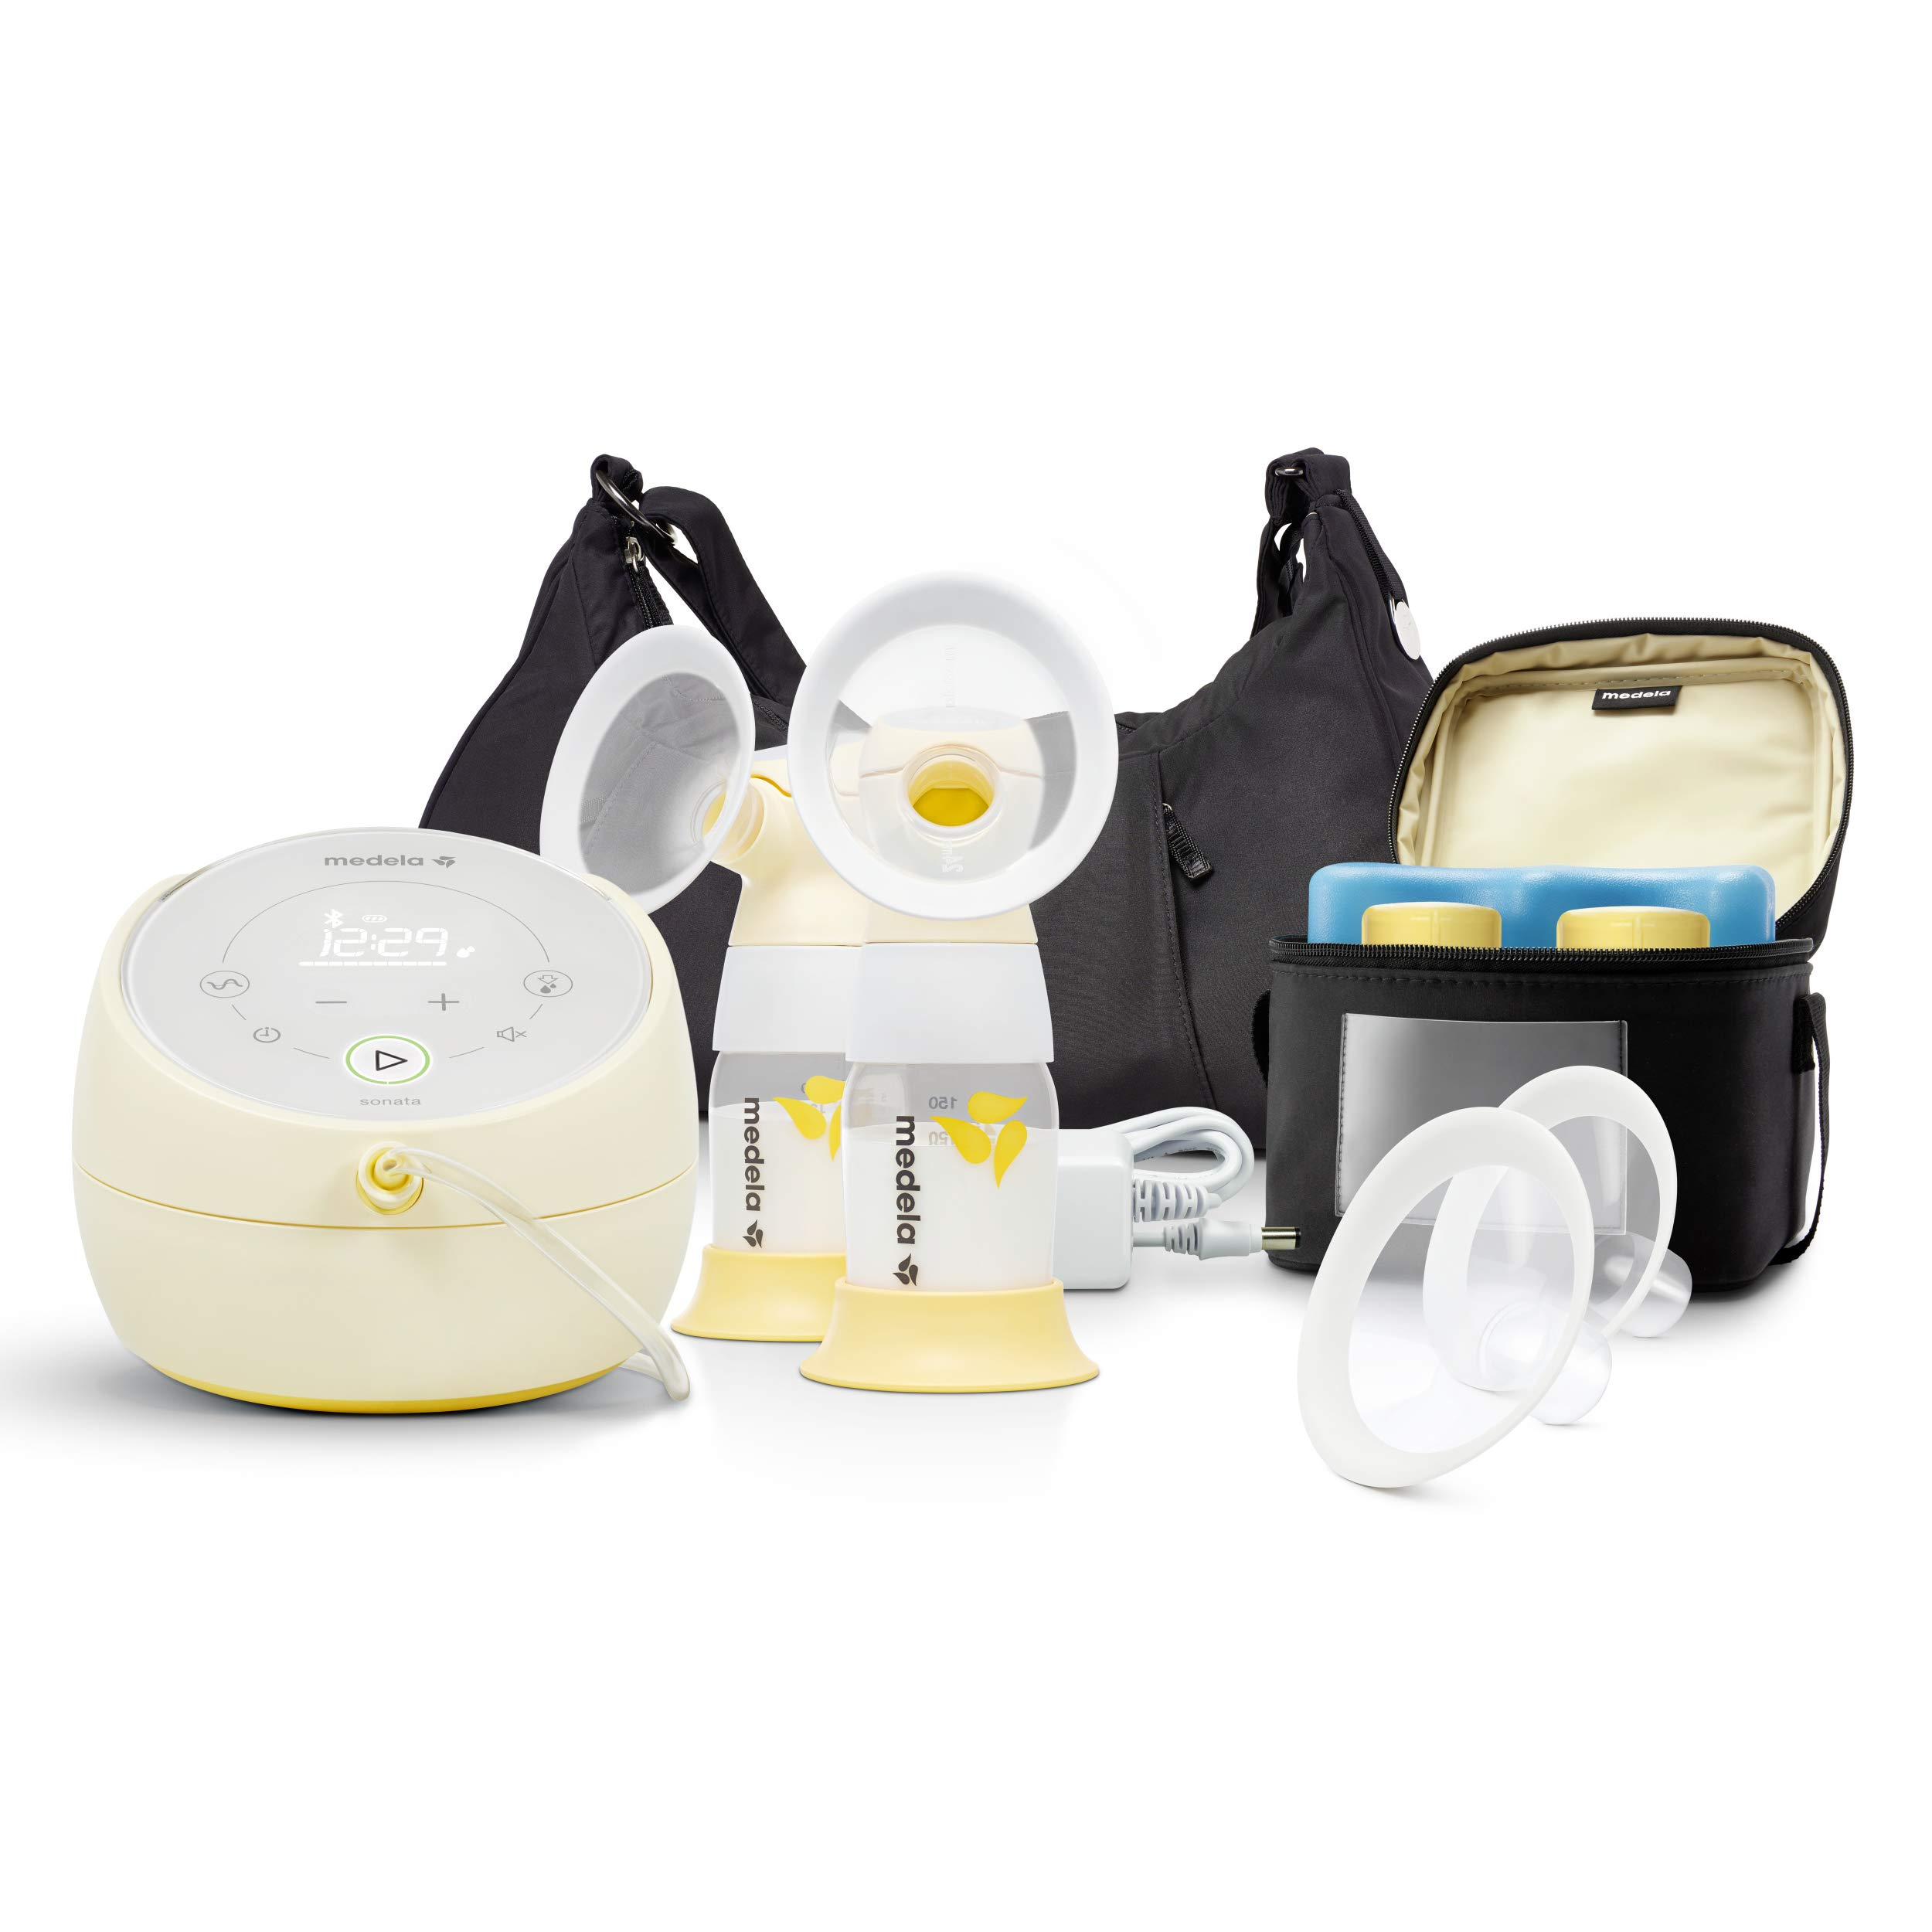 Medela Sonata Smart Breast Pump, Hospital Performance Double Electric Breastpump, Rechargeable, Flex Breast Shields, Touch Screen Display, Connects to Mymedela App, Lactation Support by Medela